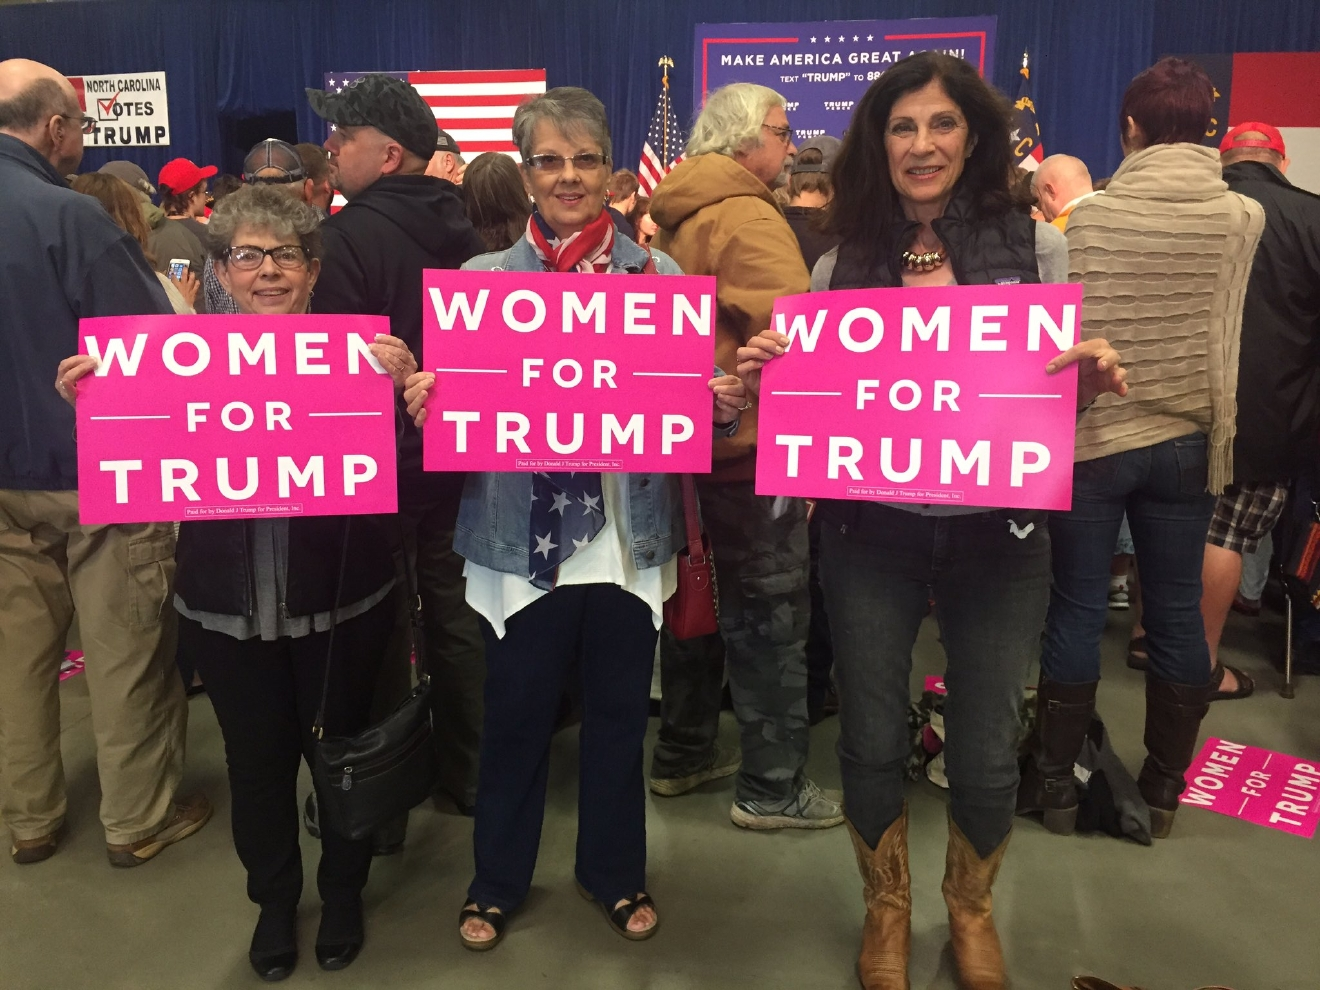 Donald Trump came back to the North Carolina mountains on Oct. 21, 2016, for a rally in the presidential battleground state. The Republican presidential nominee was slated to address a midday crowd in Fletcher at the Western North Carolina Agricultural Center. (Photo credit: WLOS Staff)